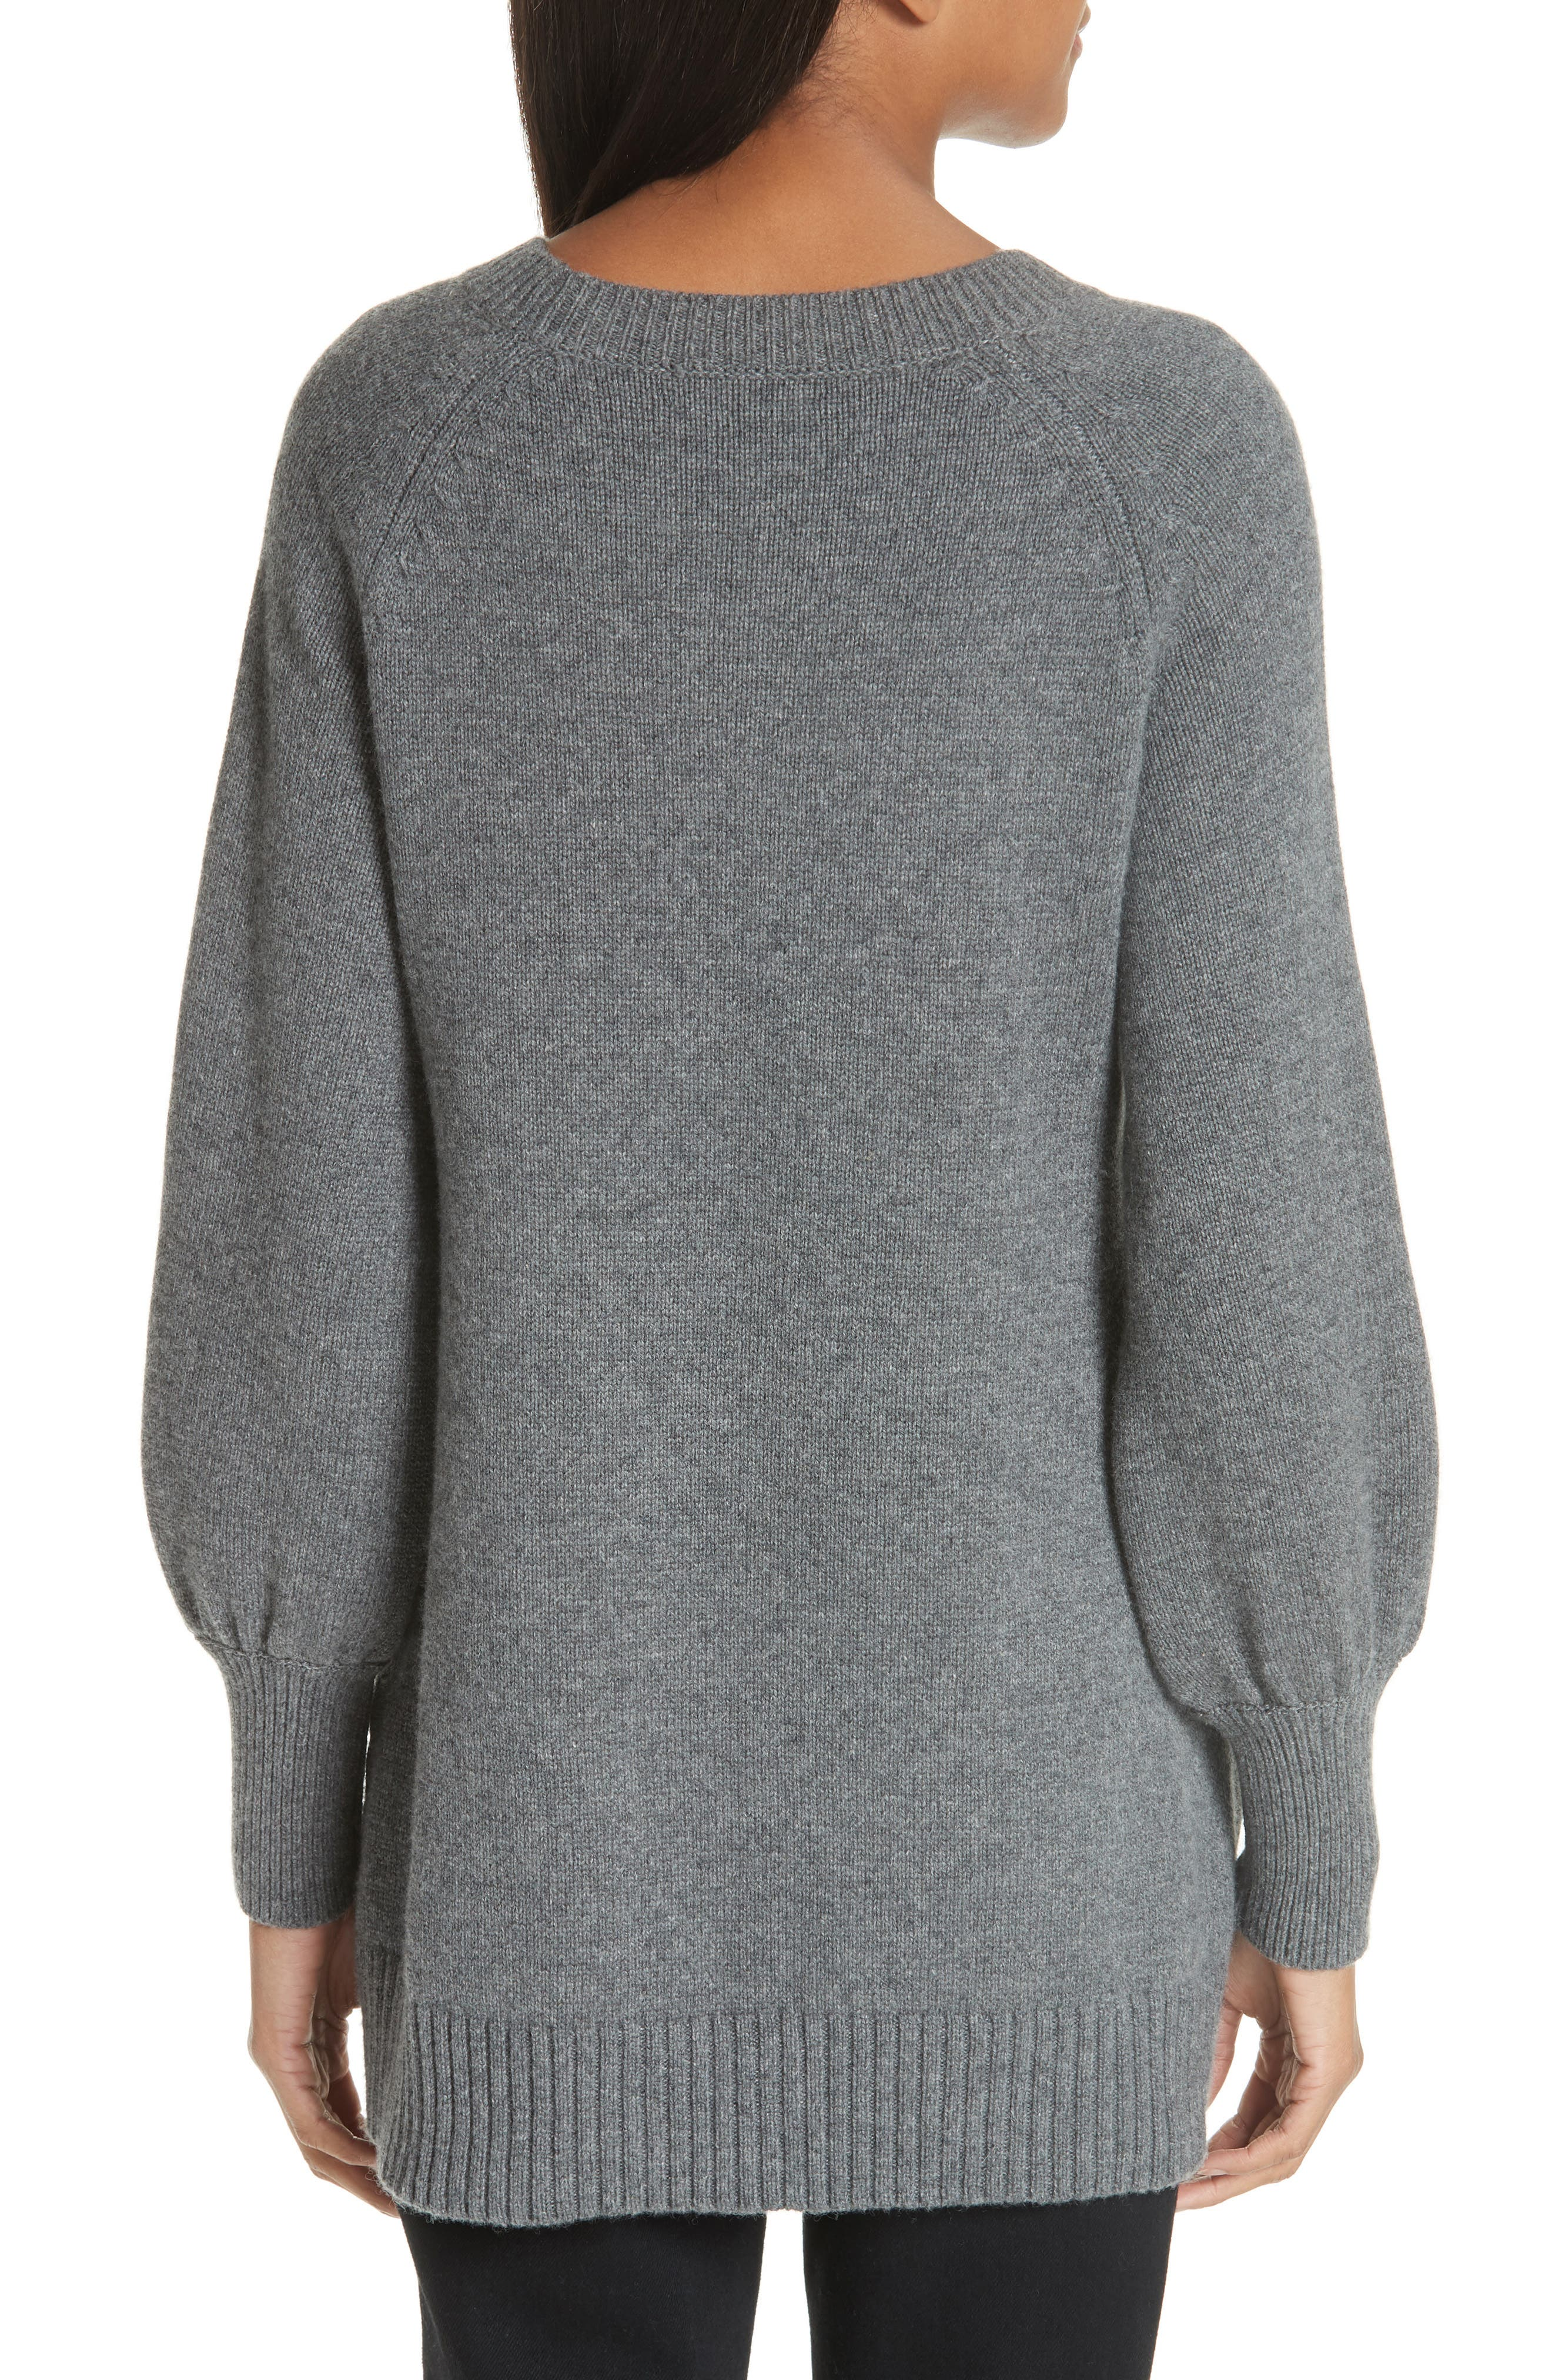 CO, Wool & Cashmere Tunic Sweater, Alternate thumbnail 2, color, GREY